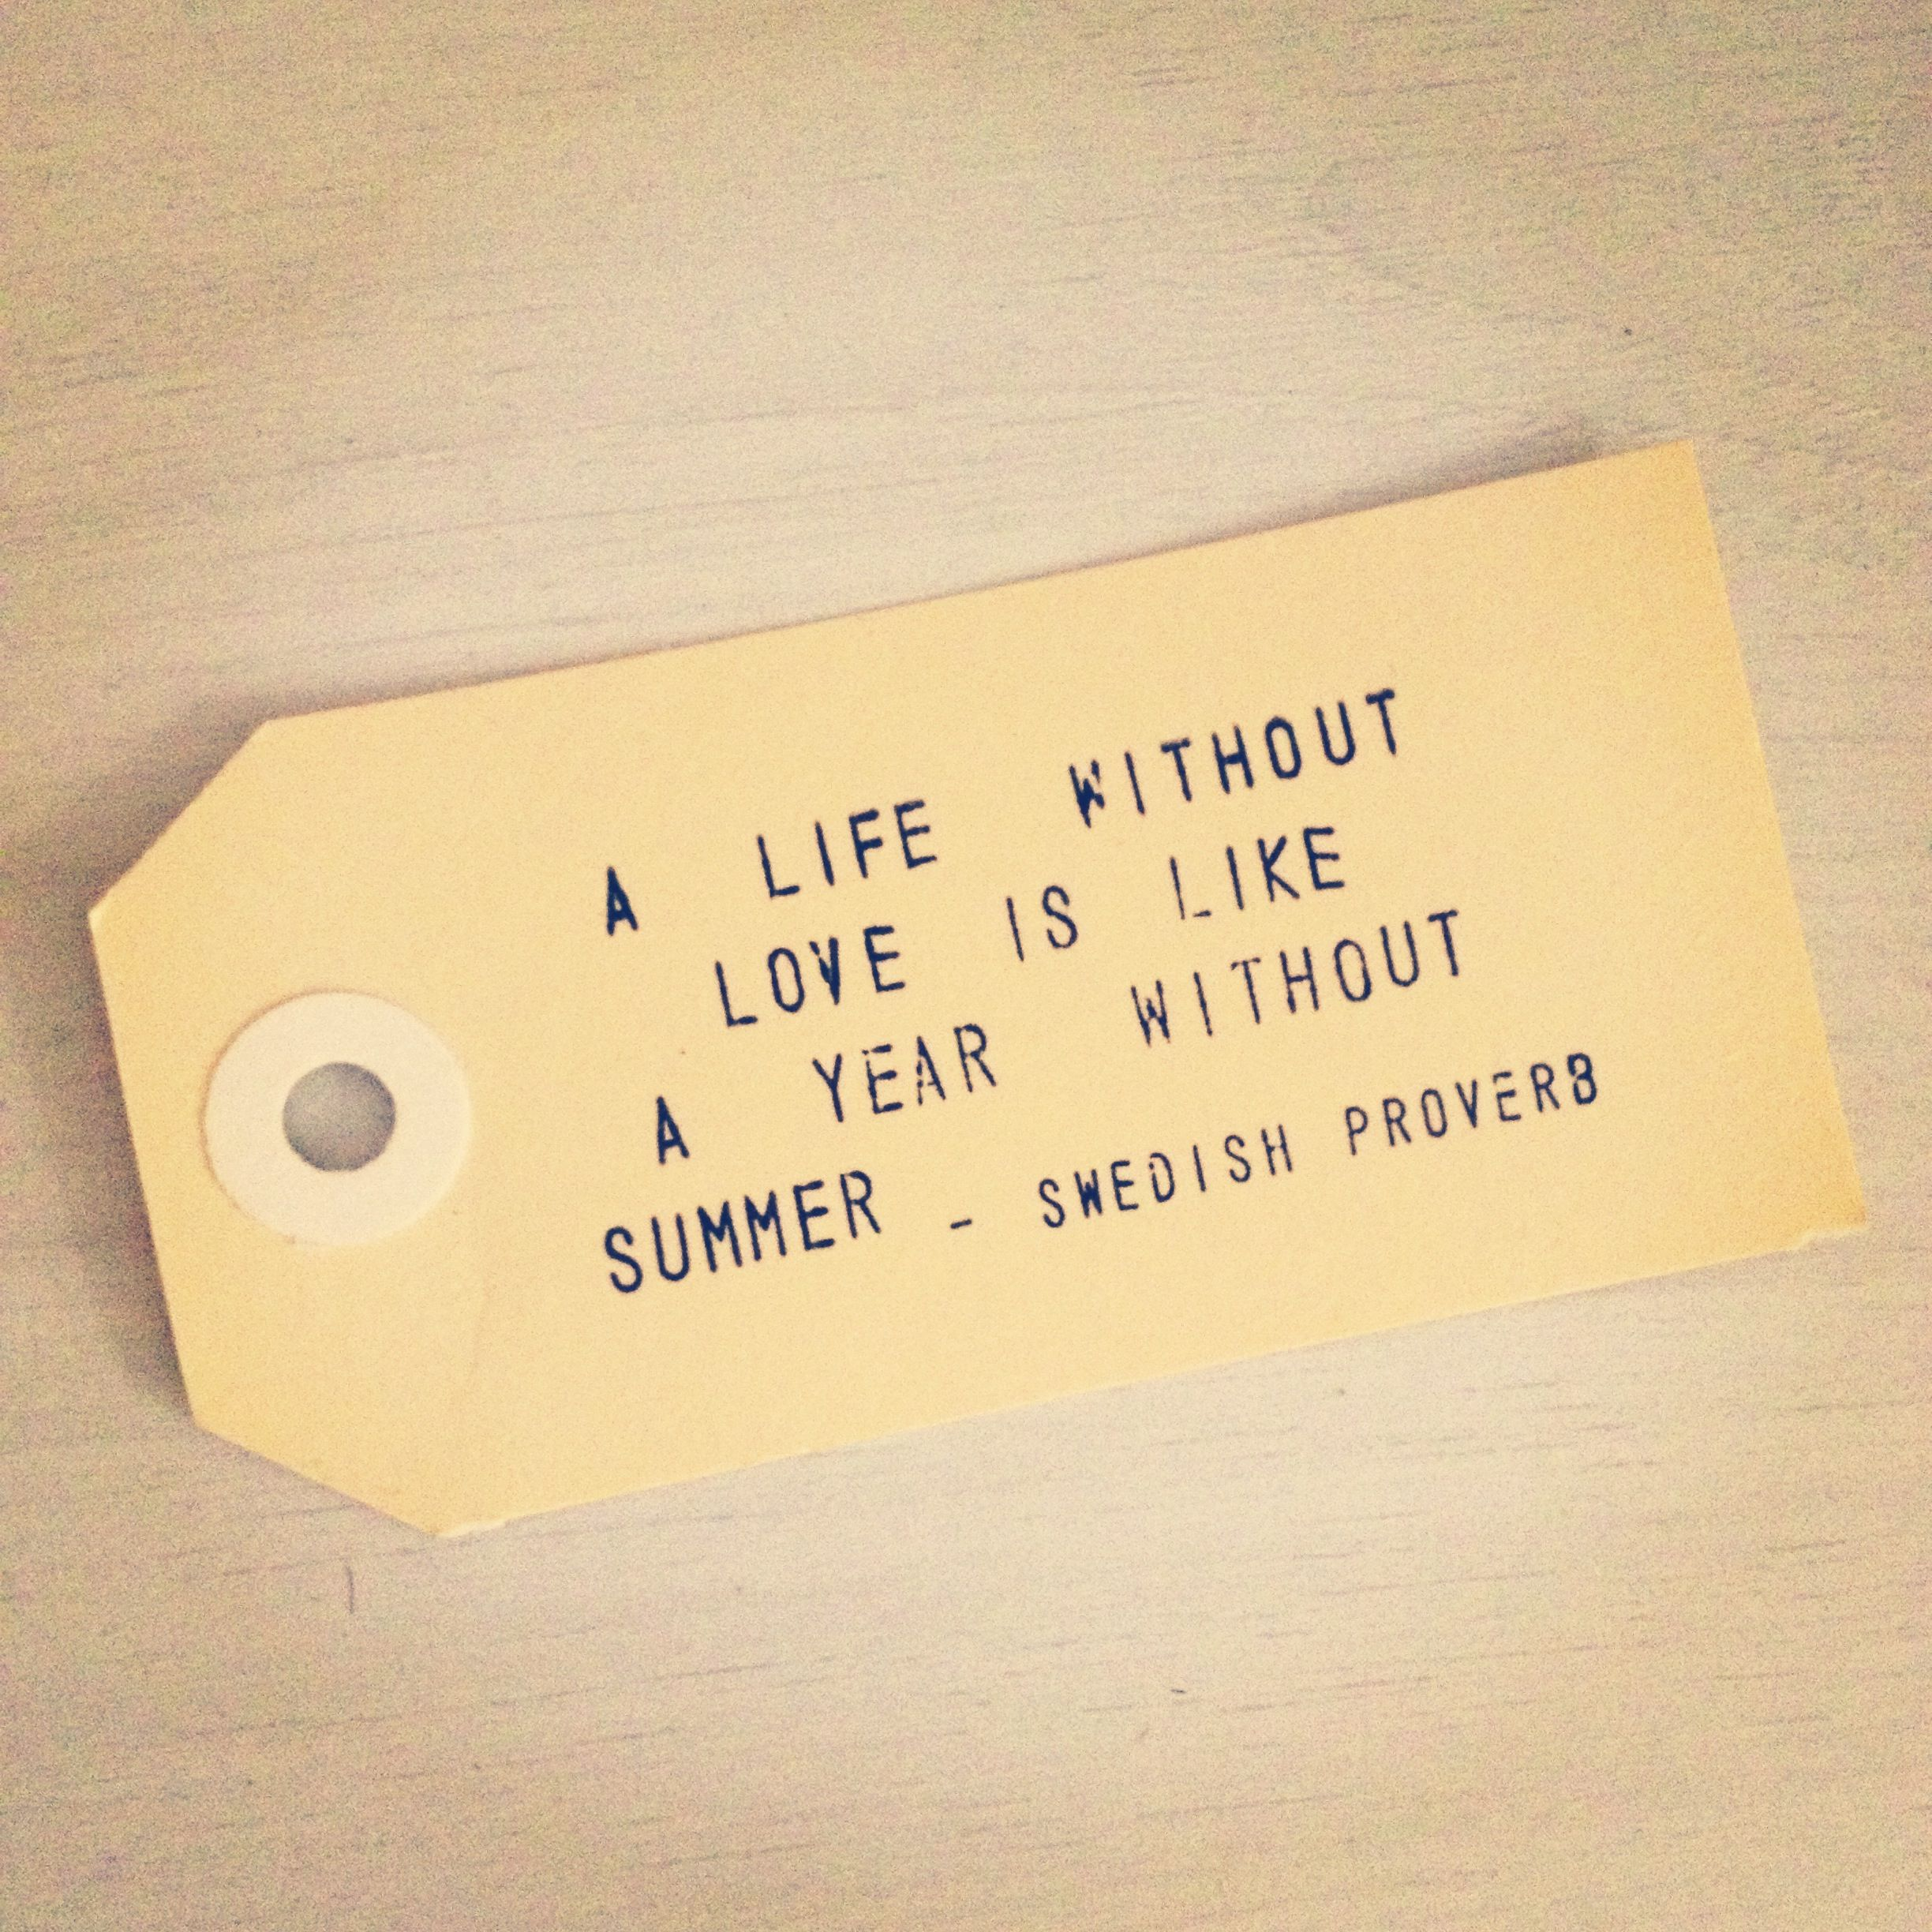 Summer Love Quotes Mesmerizing A Life Without Love Is Like A Year Without Summer#quote #summer